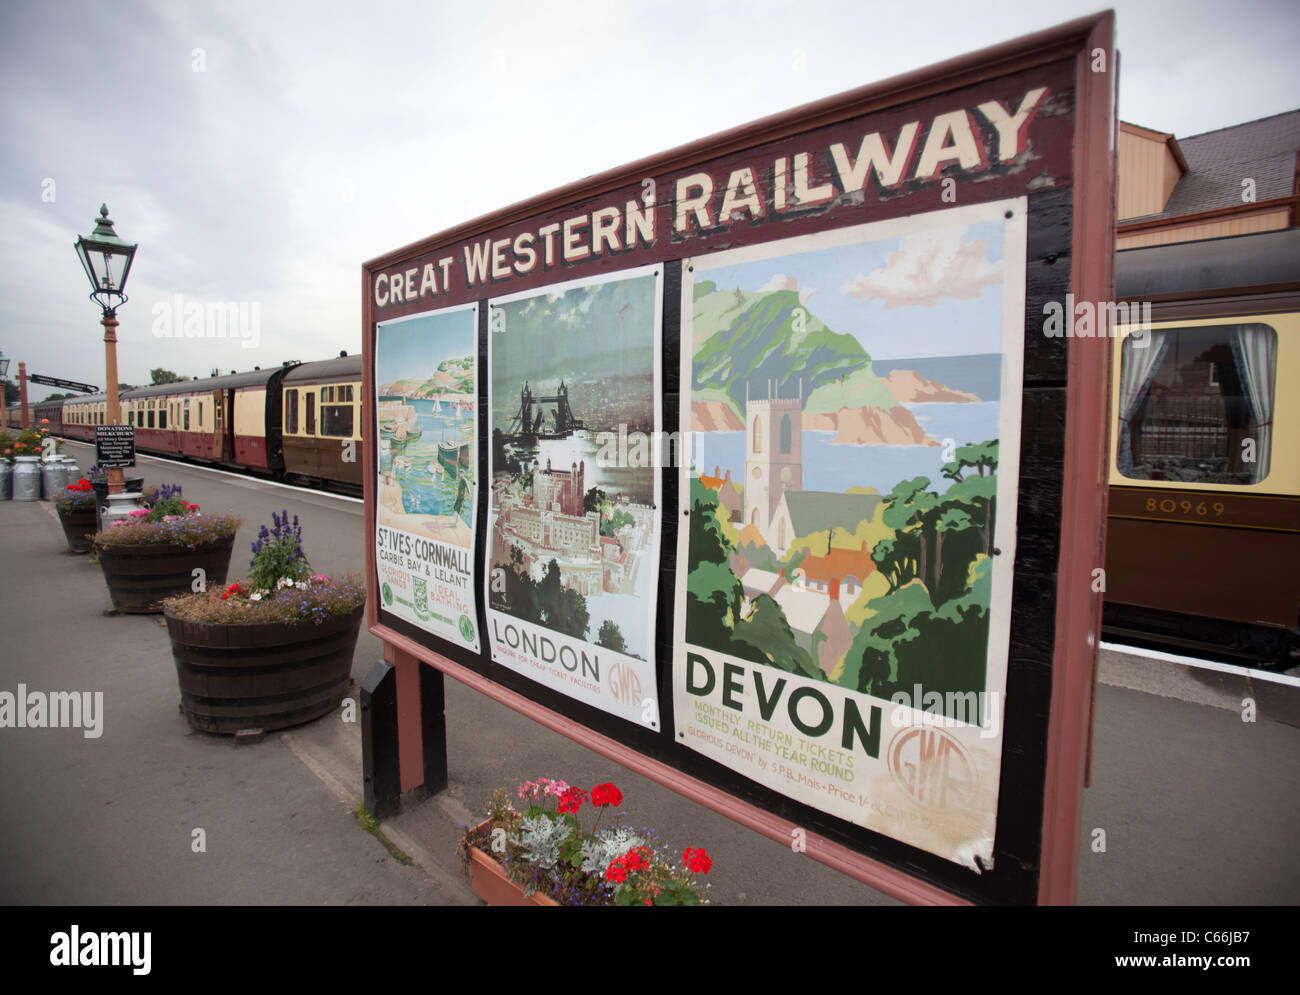 Old Great Western Railway posters on the platform of the Severn Valley Railway station at Kidderminster, England. - Stock Image